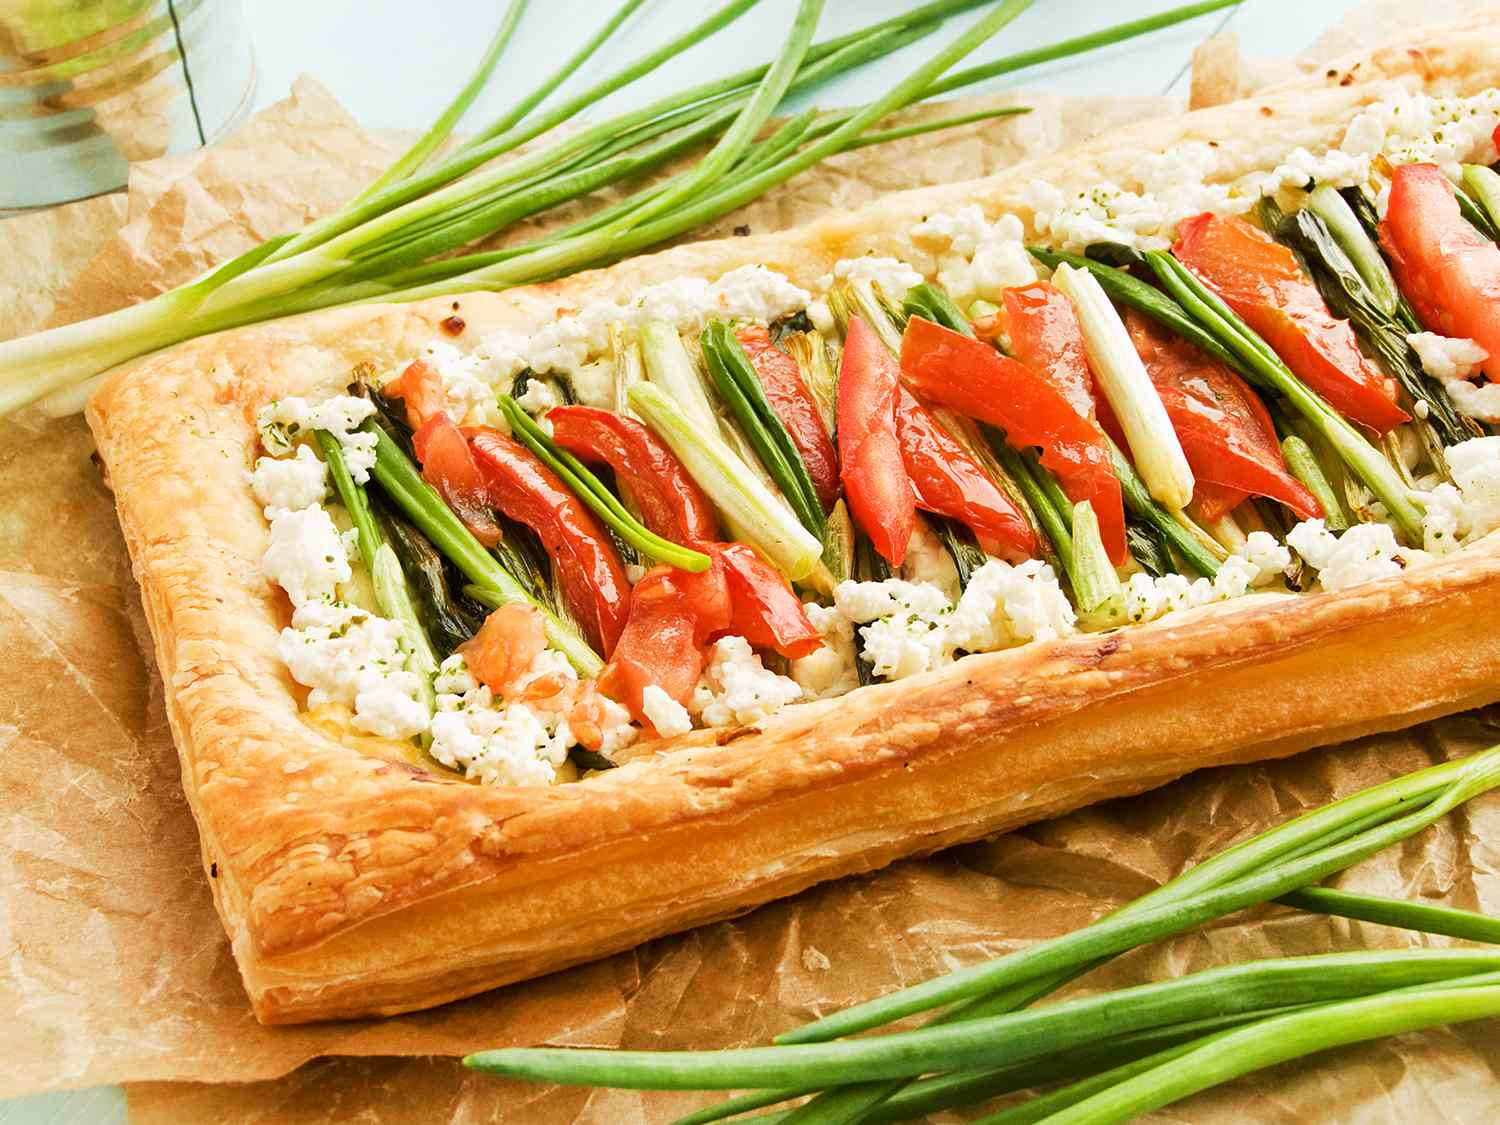 Puff-tart with greens, veggies and cottage cheese.